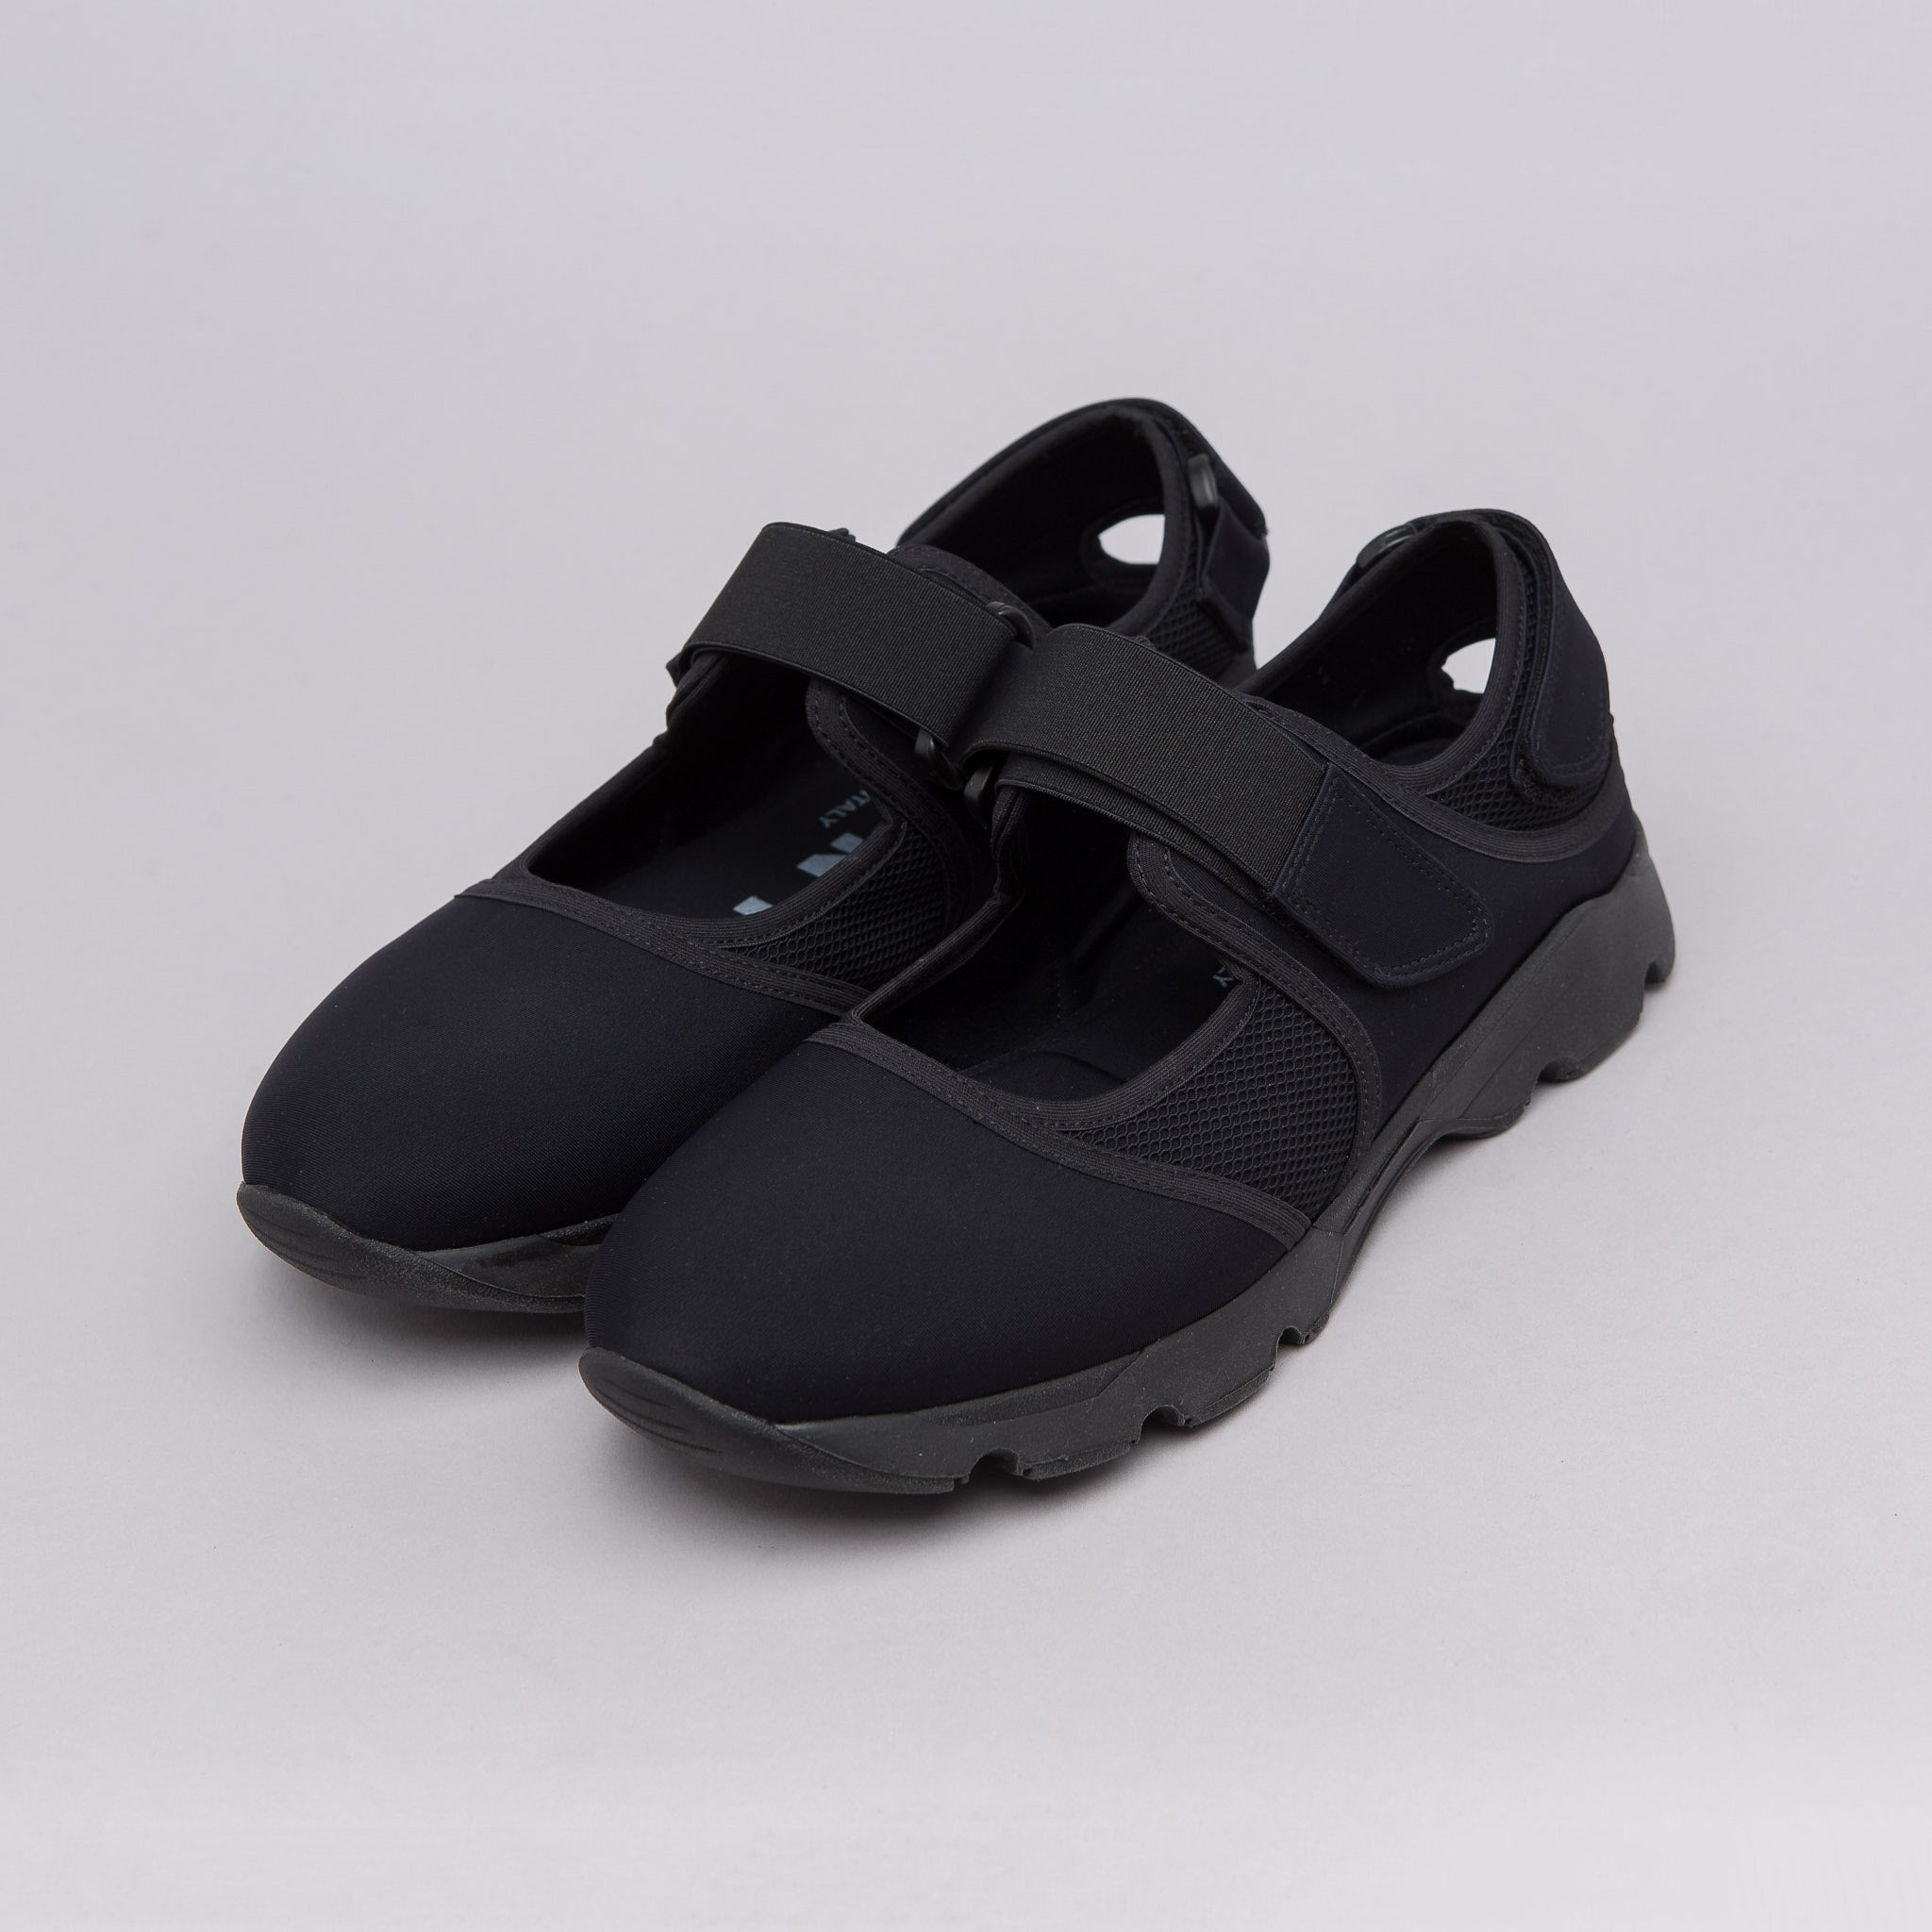 Neoprene Sneaker in Black